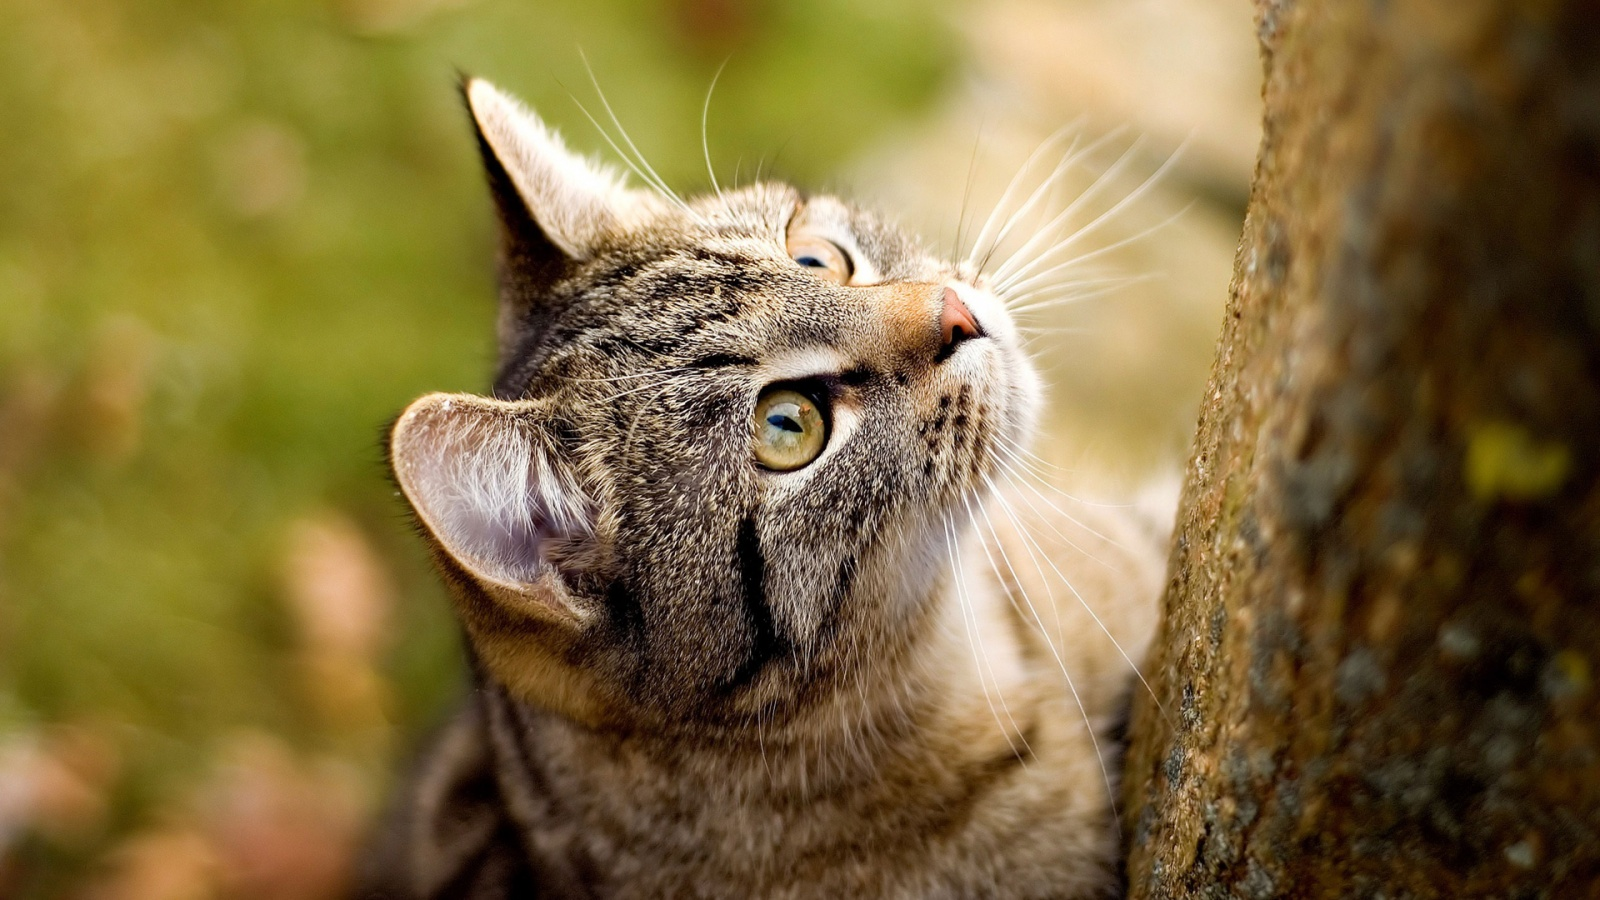 Cat staring up wallpapers in jpg format for free download - Free wallpaper of kittens ...